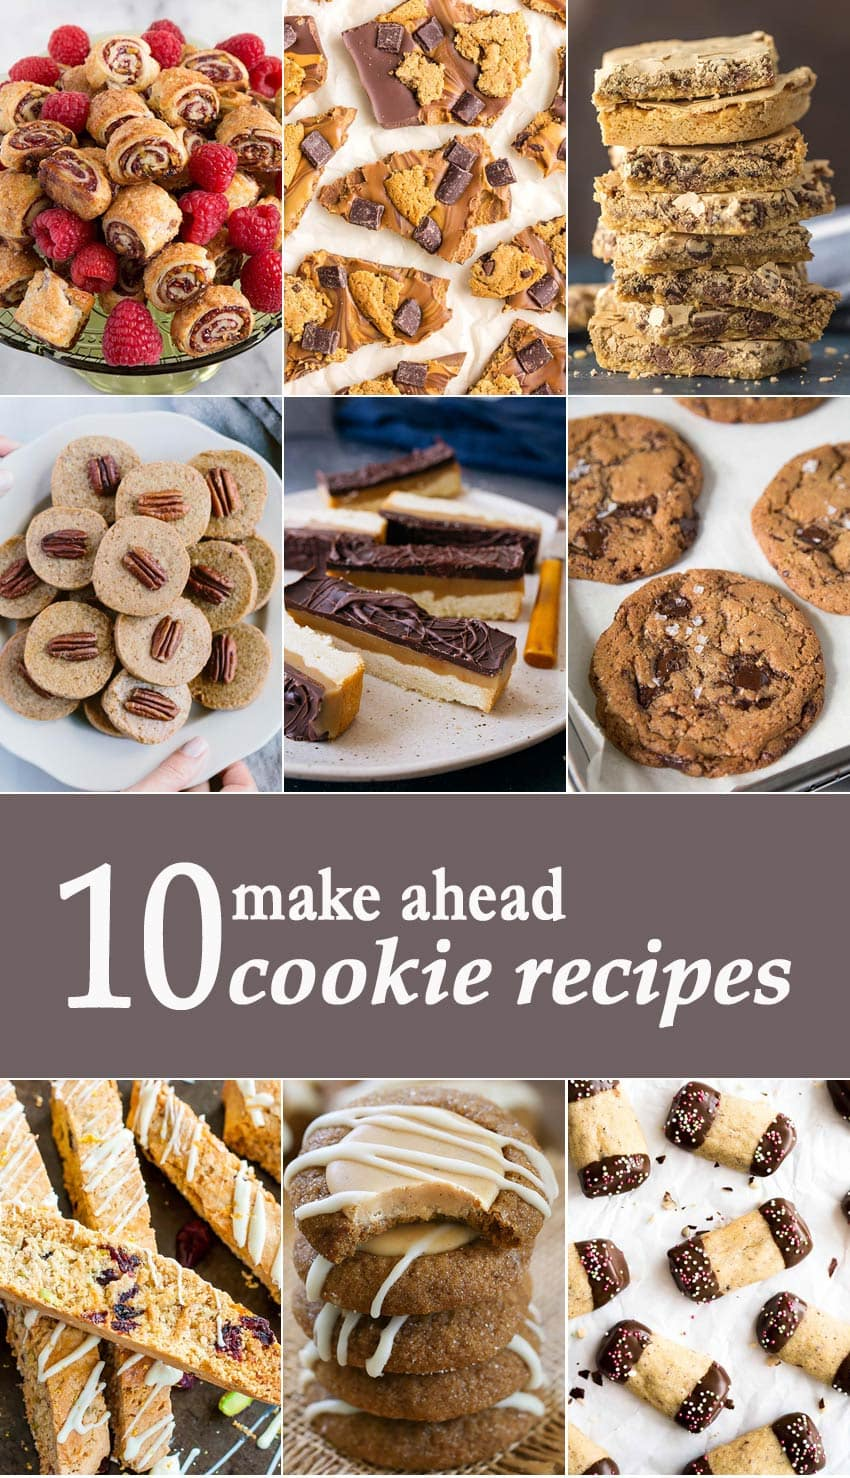 10 Make Ahead Cookie Recipes titled photo collage